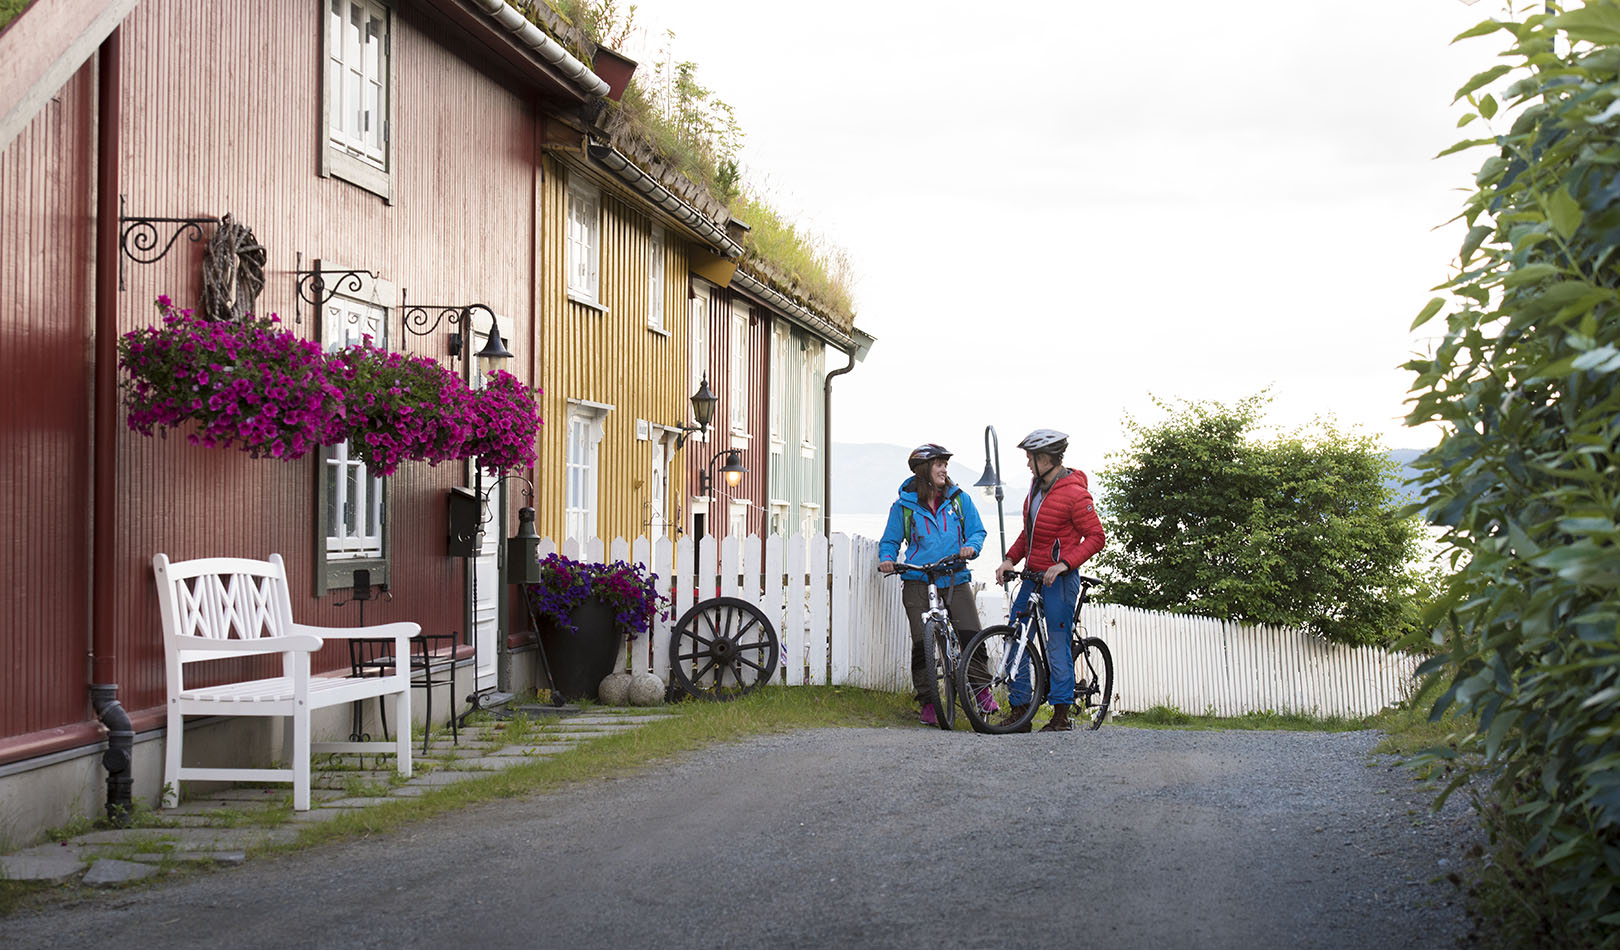 Two cyclists and pittoresque houses in Mo i Rana.